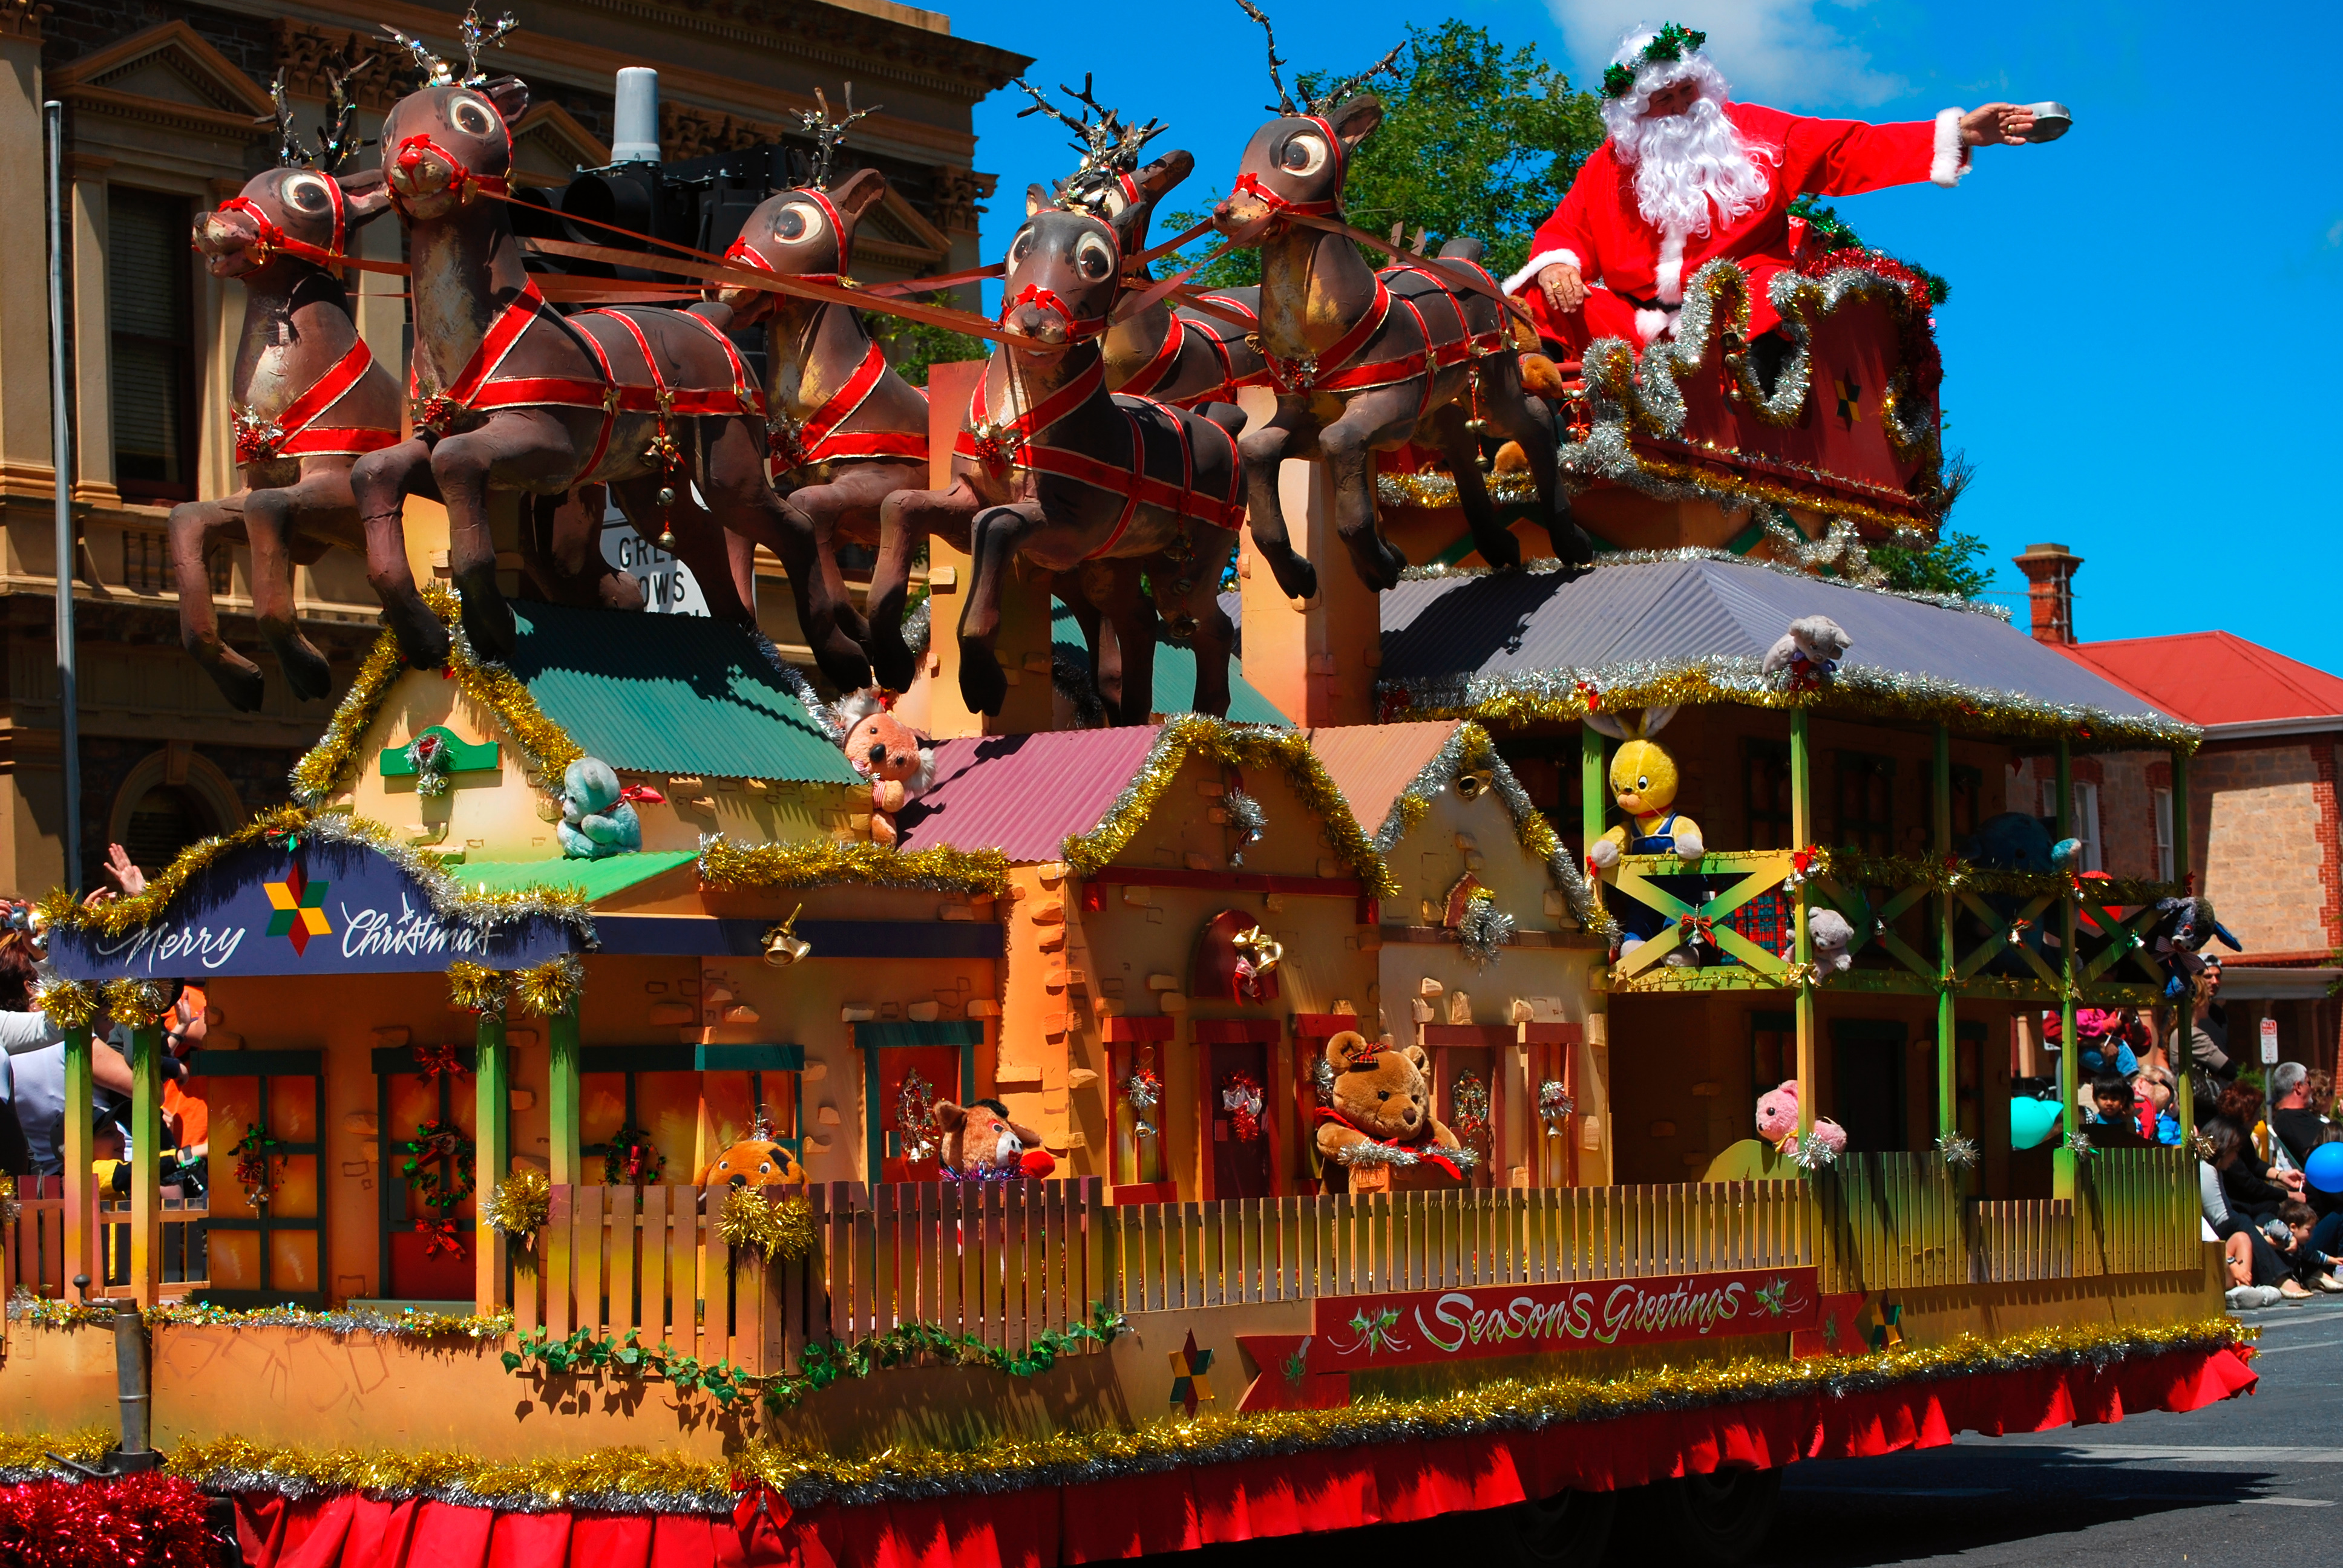 File:Father christmas float - 2008 norwood christmas pageant.jpg ...